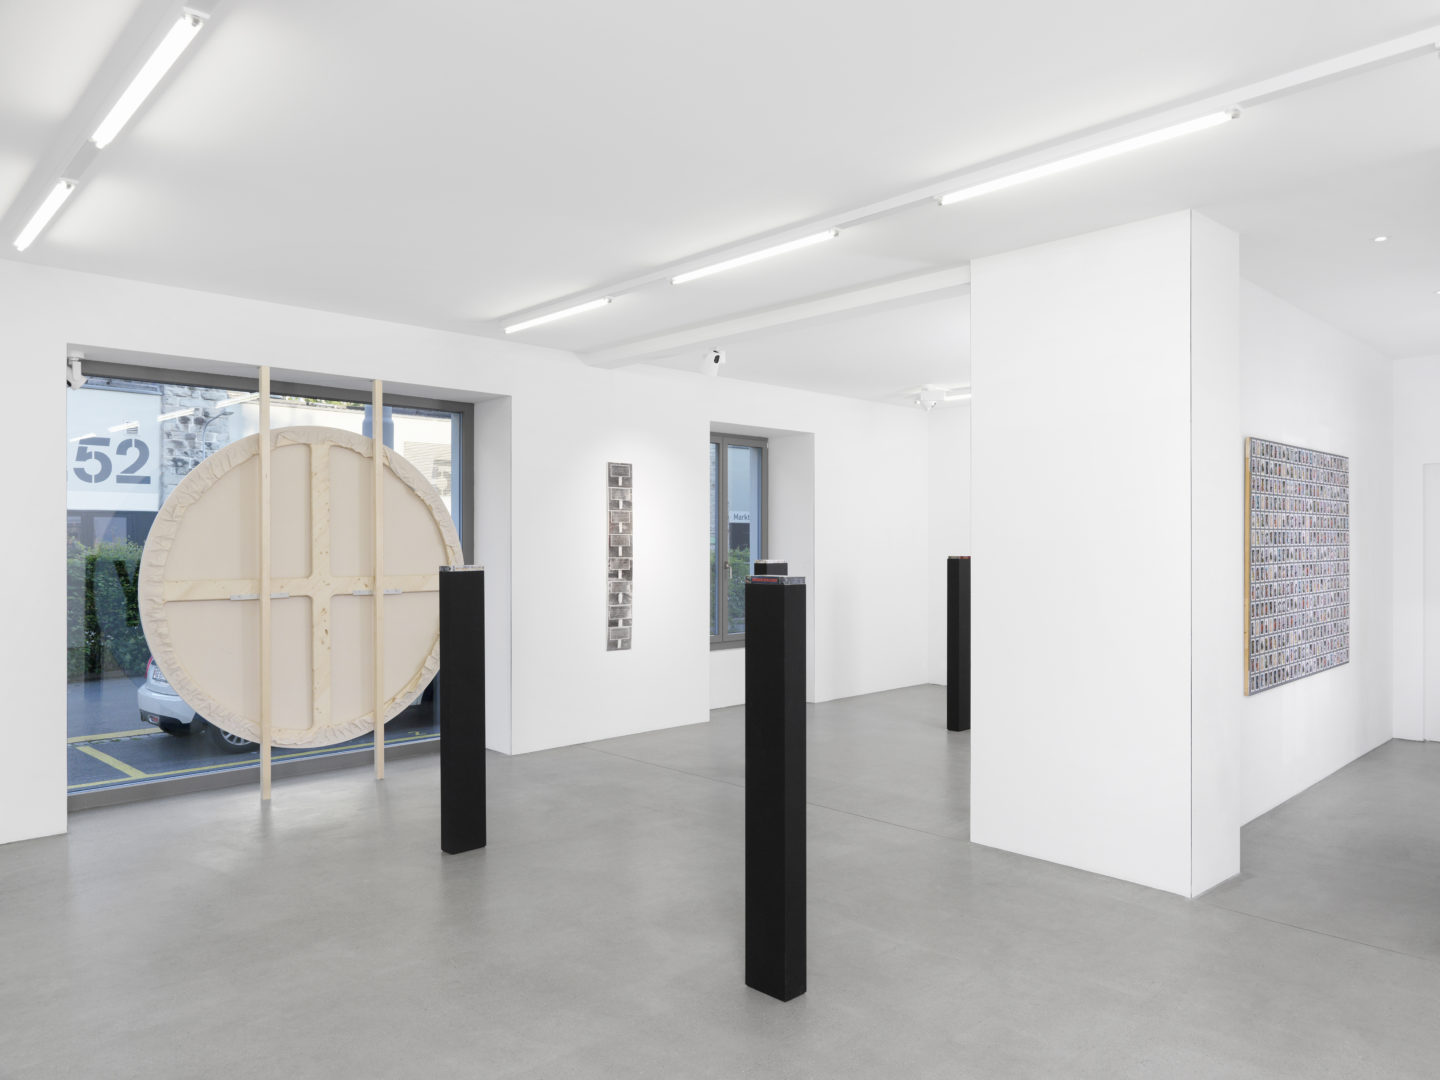 Exhibition View Mitchel Anderson «Recurrence» at Galerie Maria Bernheim, Zurich / Photo: Annik Wetter / Courtesy: the artist and Galerie Maria Bernheim